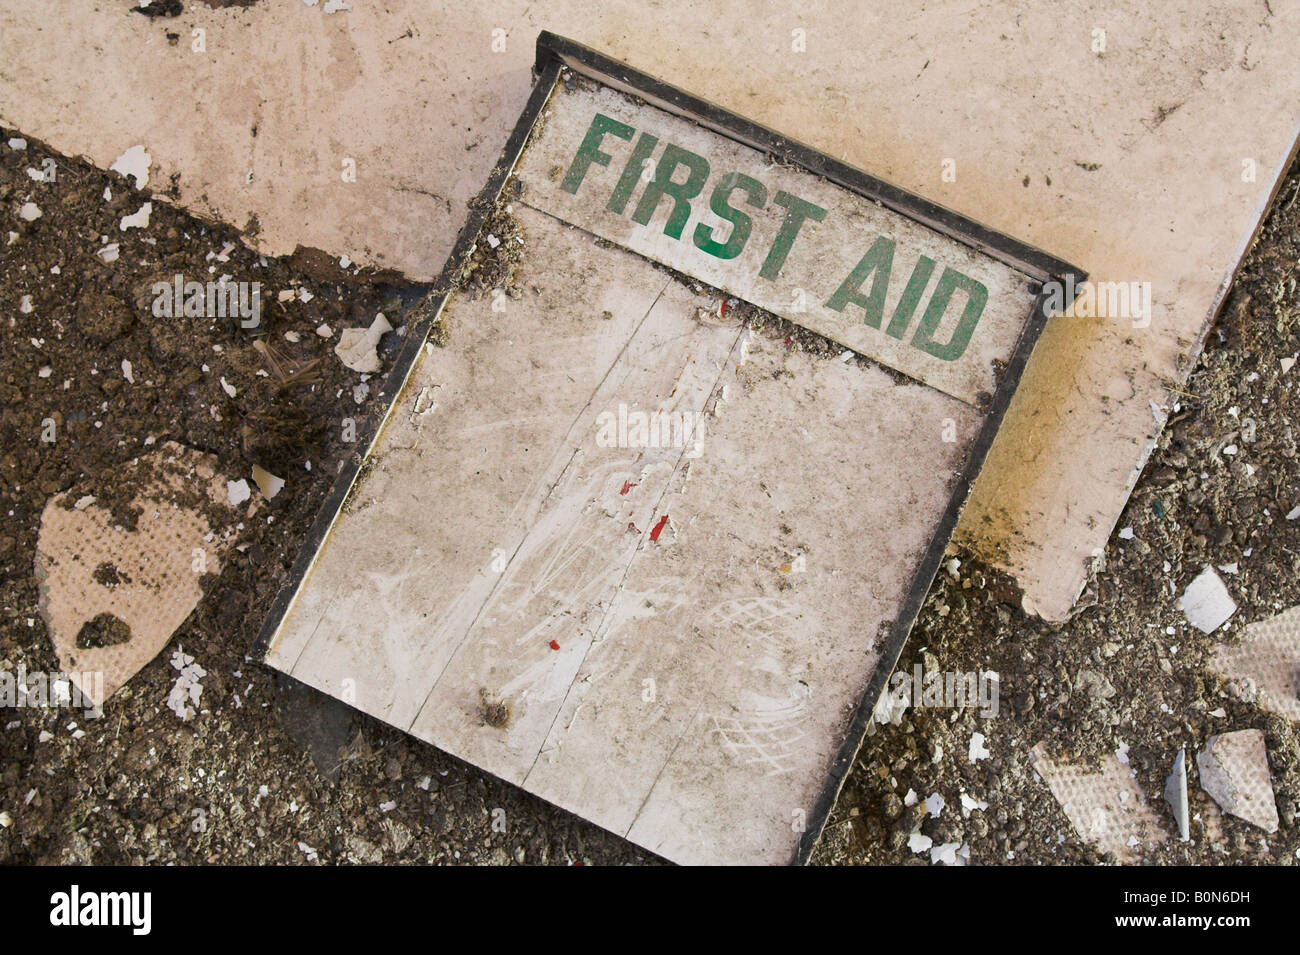 Old abandoned first aid cabinet in ruined building - Stock Image